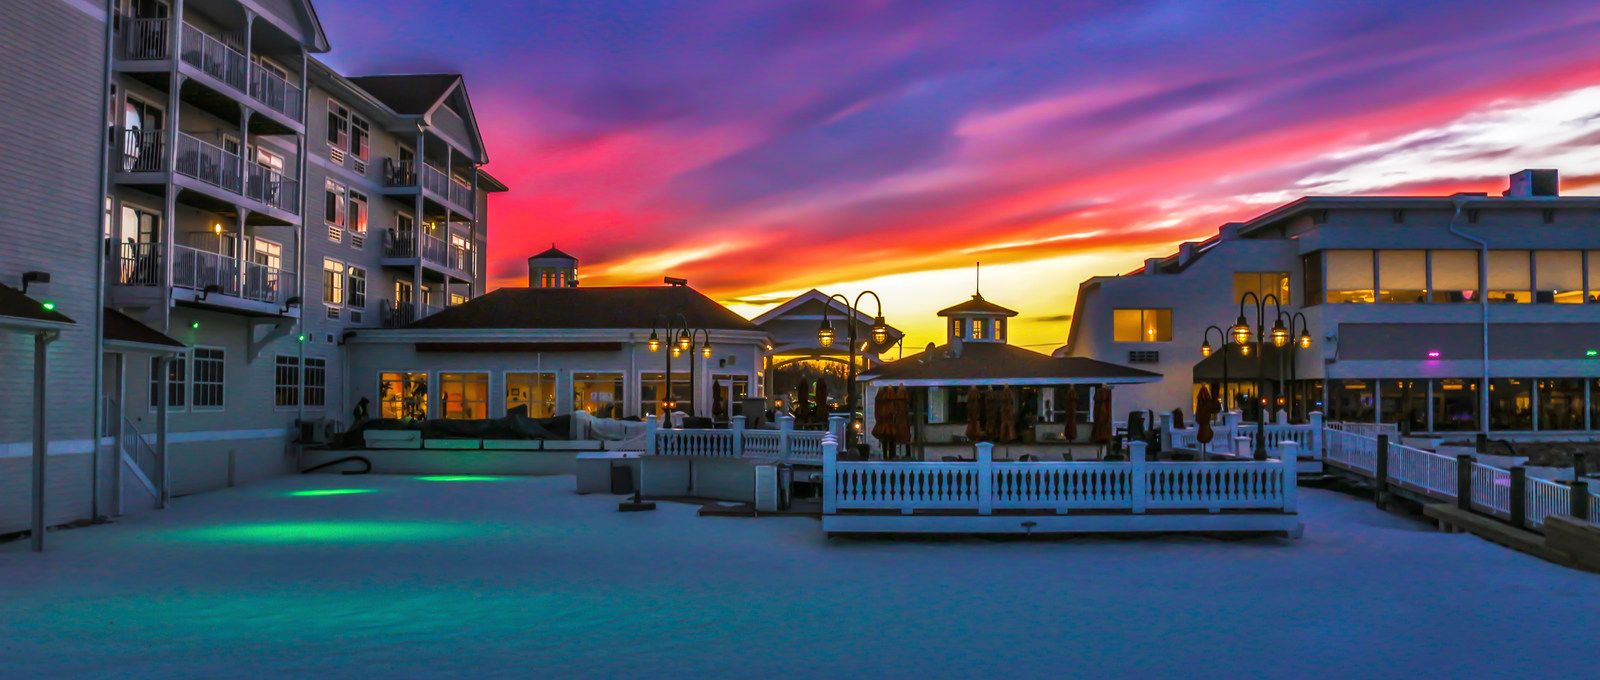 Chesapeake Bay Hotels Beach Resort Spa Stay Overnight Spring Summer